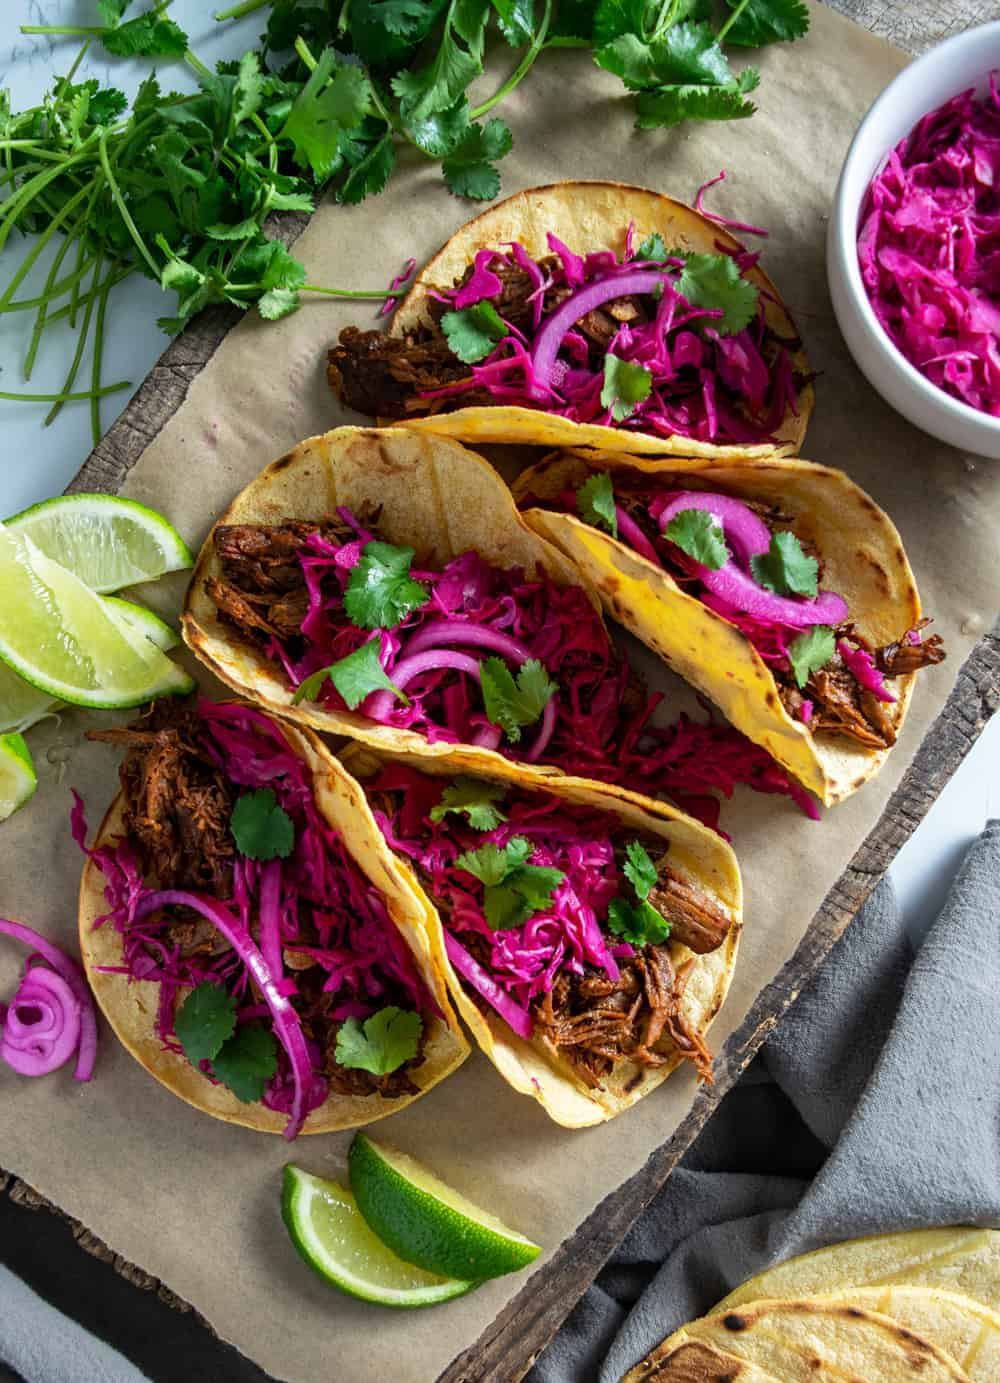 Tray of Beef Barbacoa with Pickled Red Onion and Cabbage